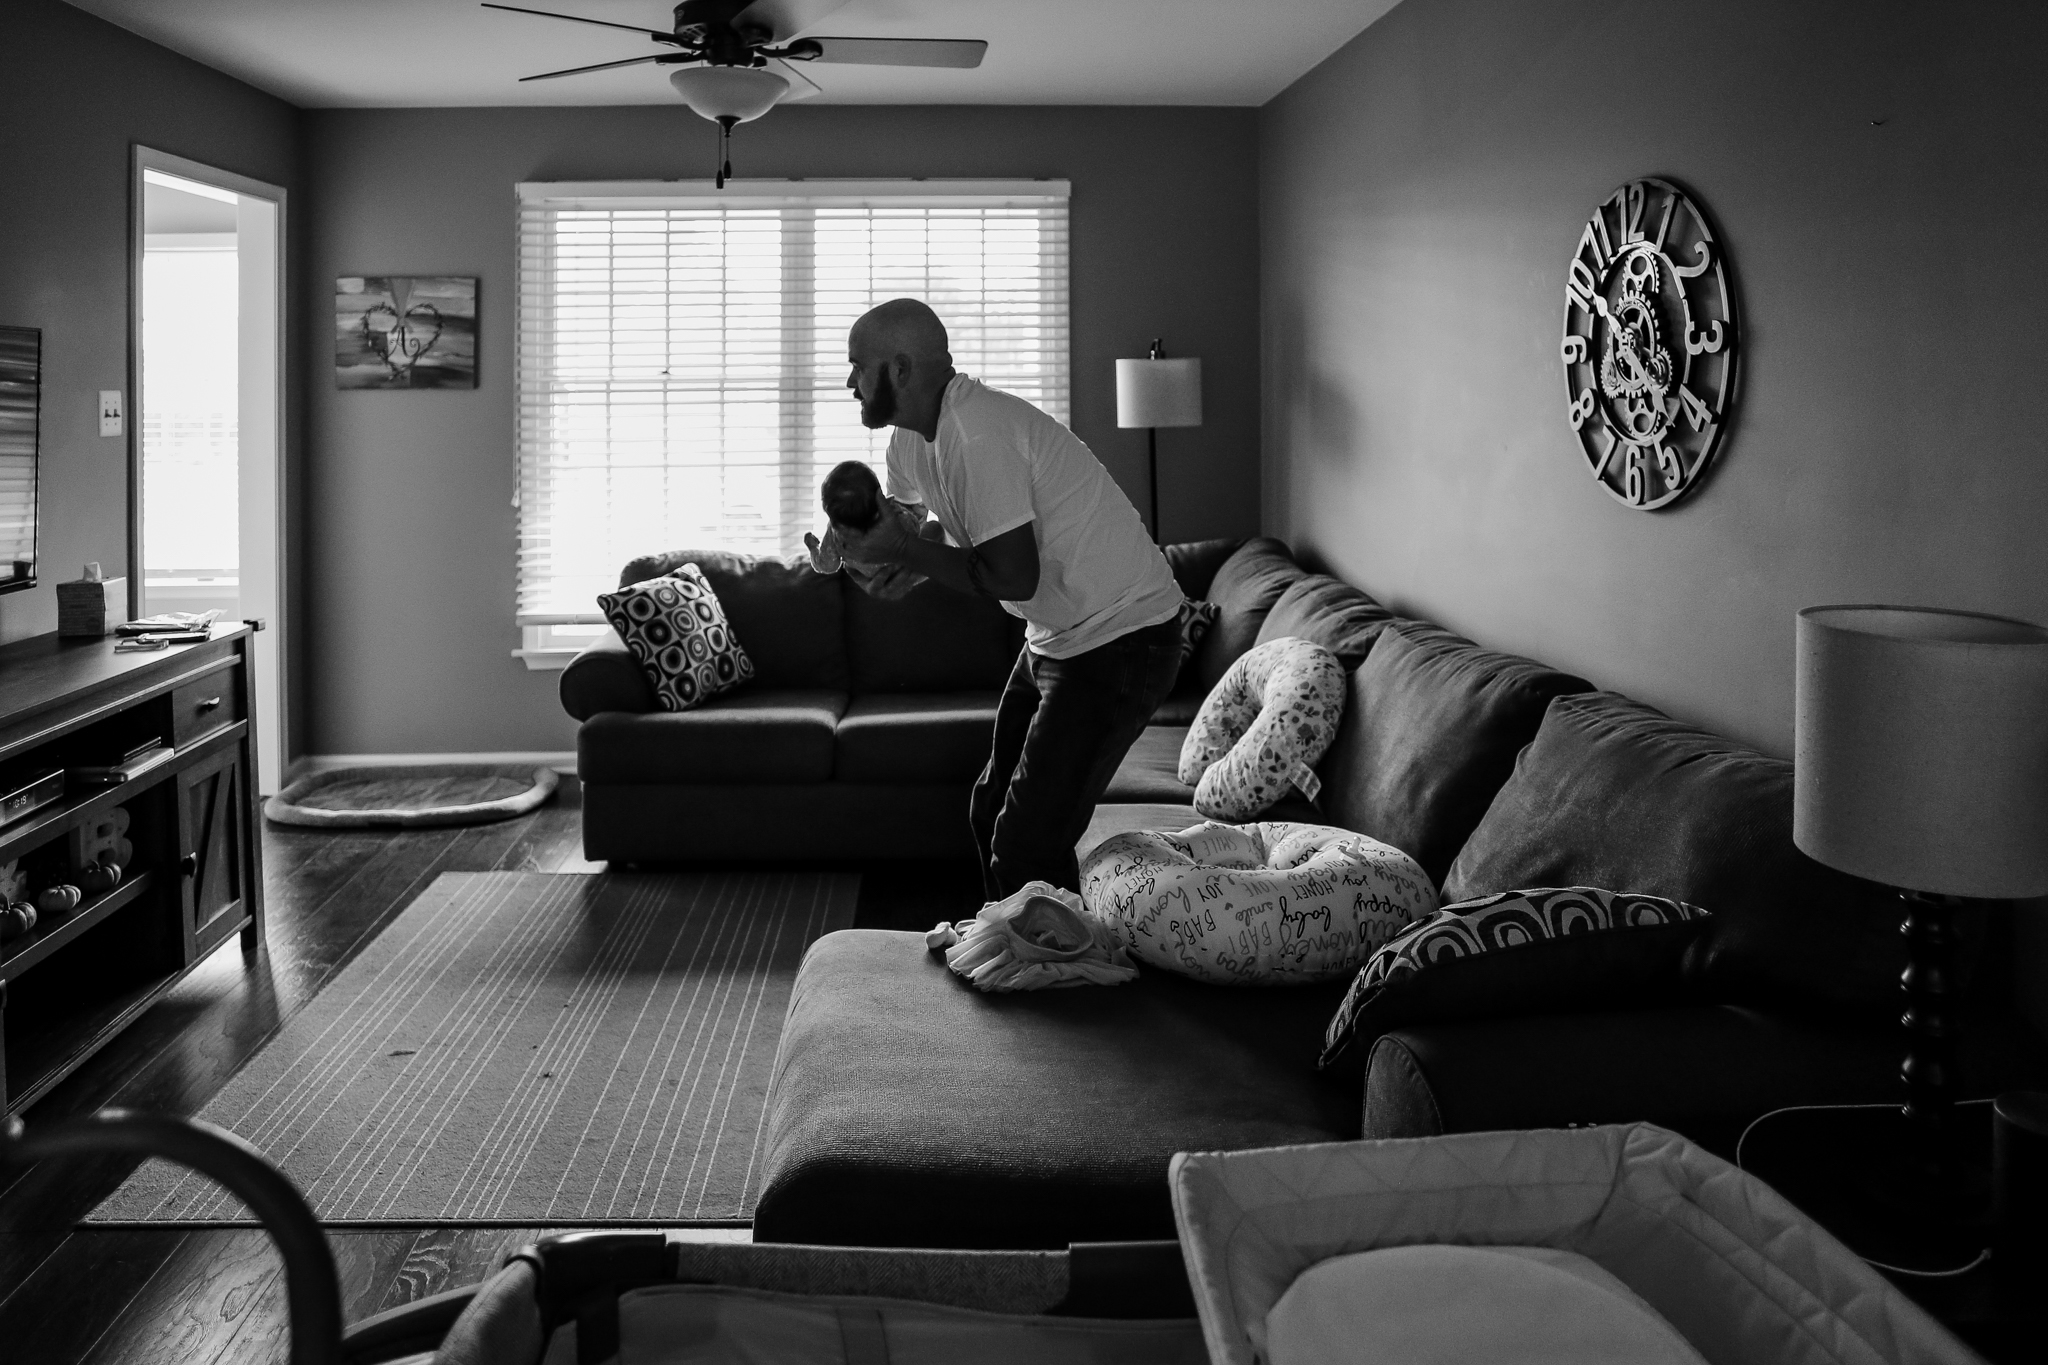 Father picking up his infant daughter during an at home family photography session in Lehigh Valley, Pennsylvania.